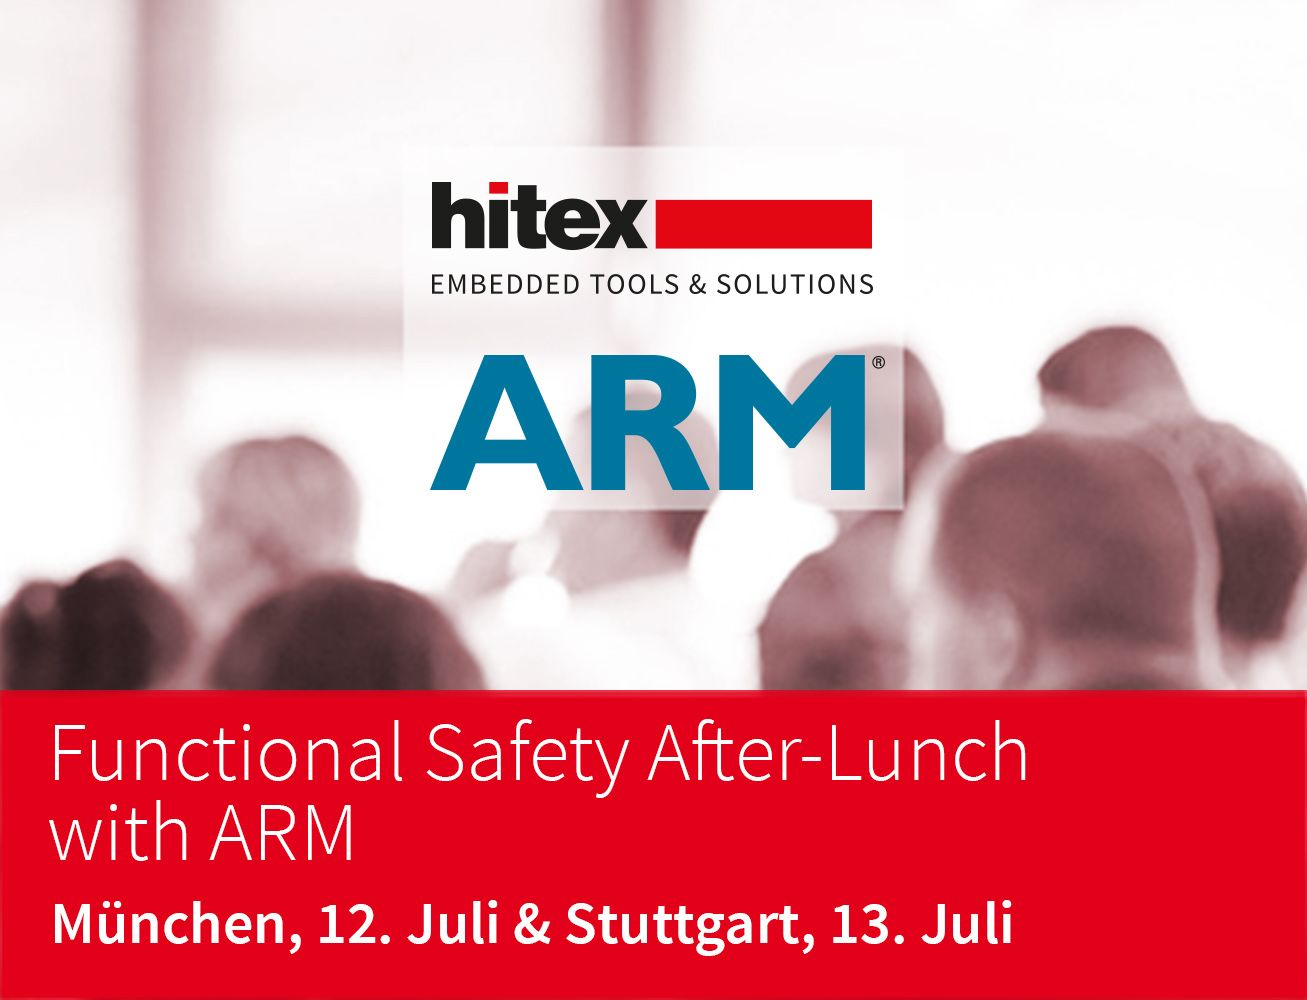 Functional Safety After-Lunch with ARM / 12.7. in München und 13.7. in Stuttgart